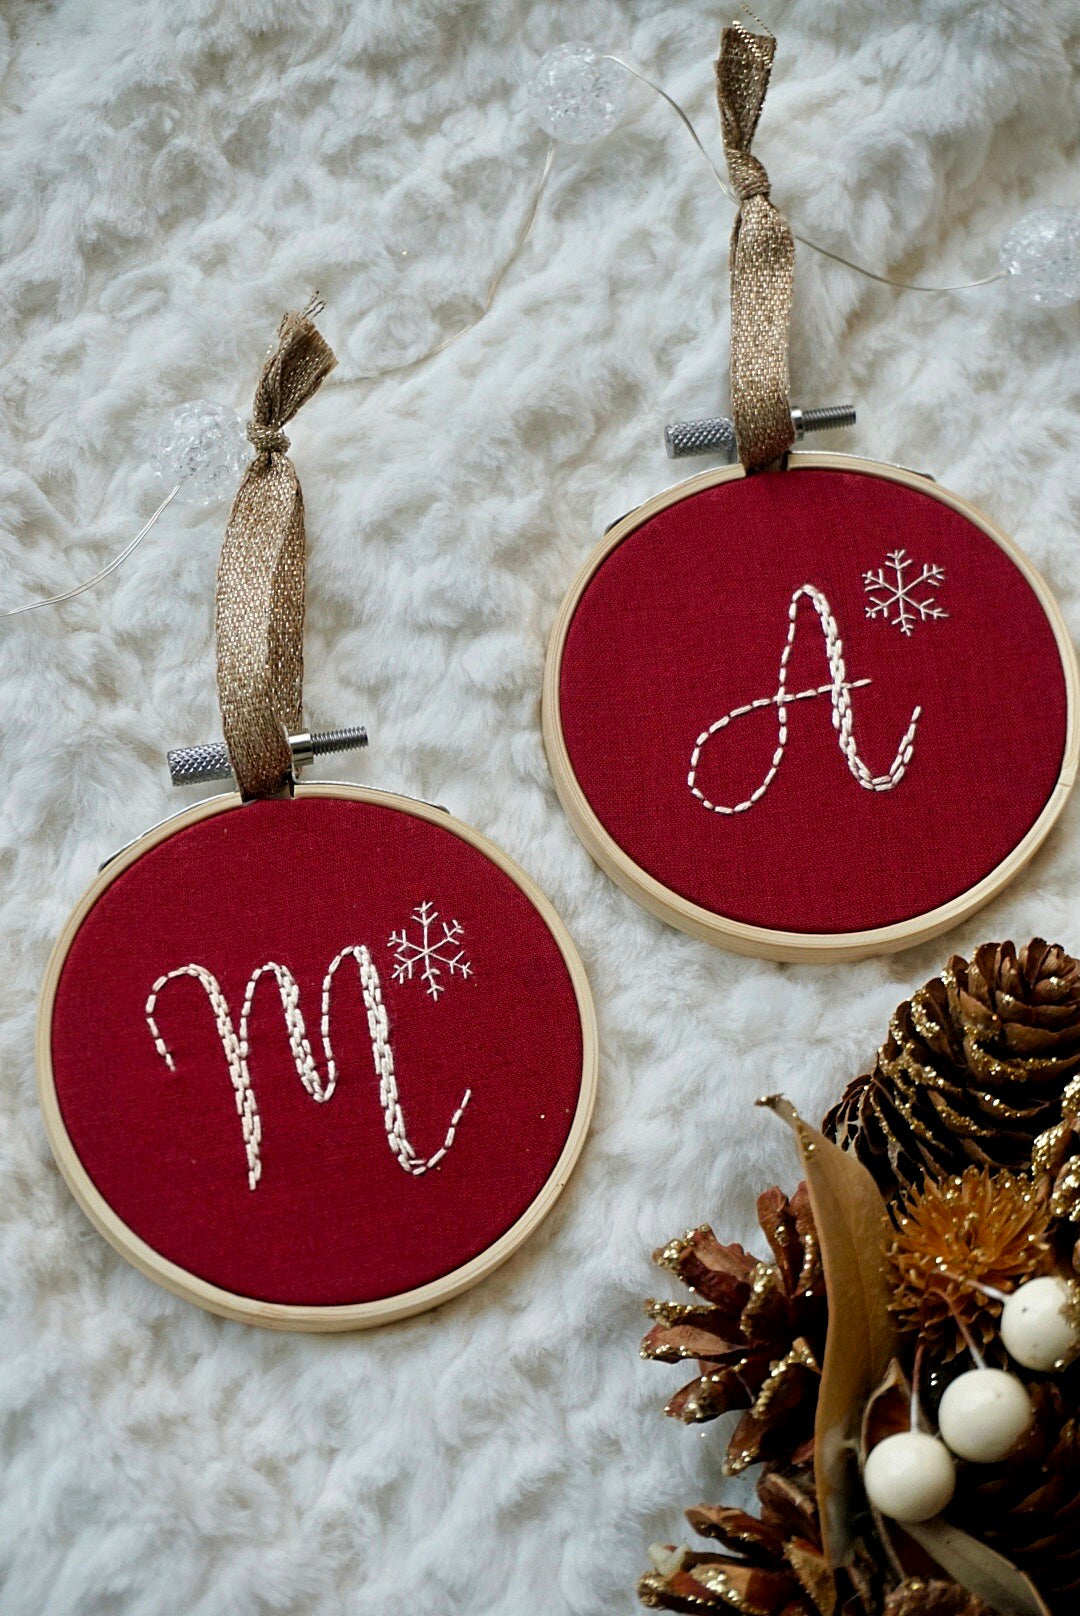 PACK OF 5 ❞ Noël ornaments, Initials (Buy 4 get 1 free)